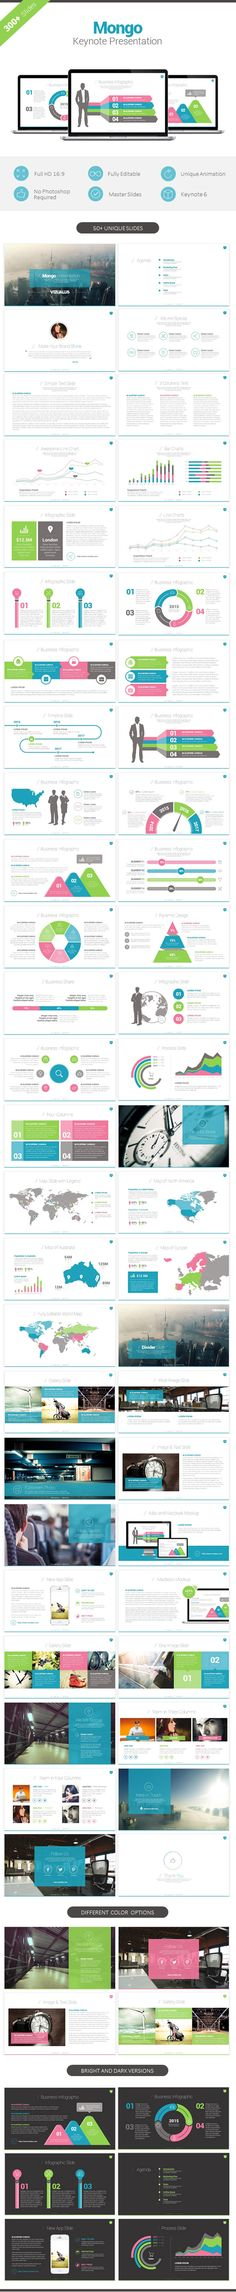 Motagua - Multipurpose PowerPoint Template Template - business presentation template